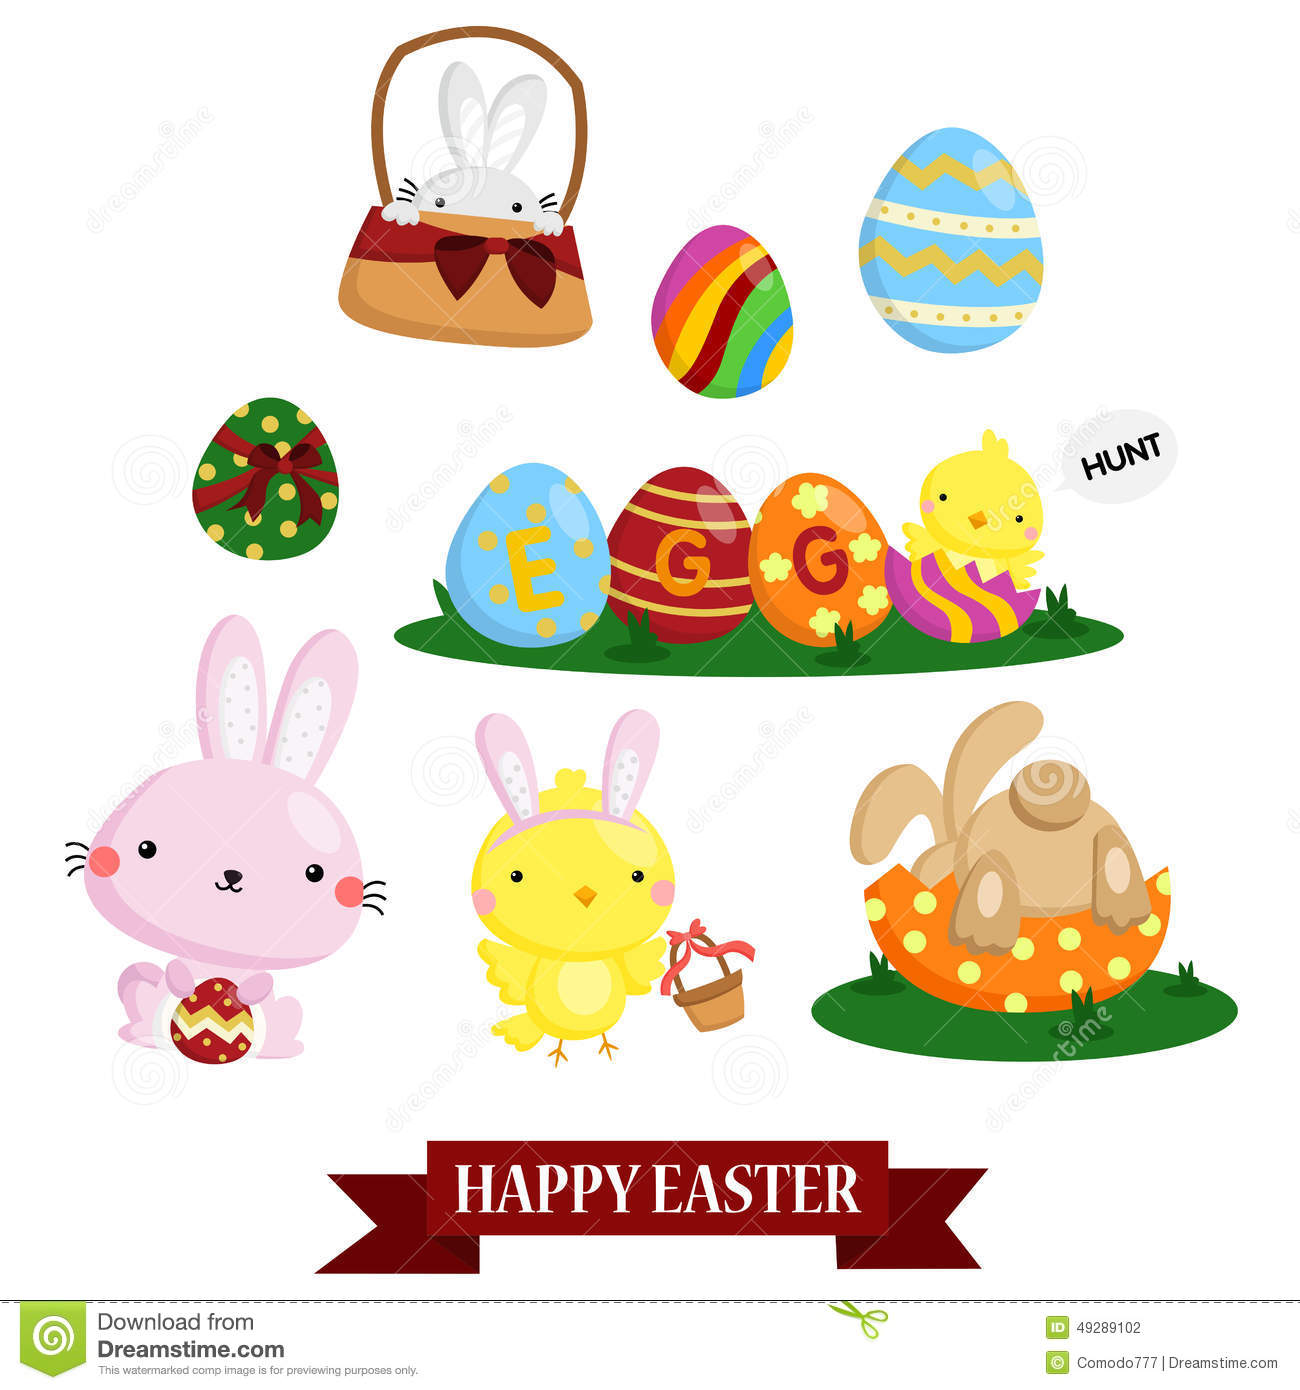 An Easter Vector Set for easter holiday xa0r44rE